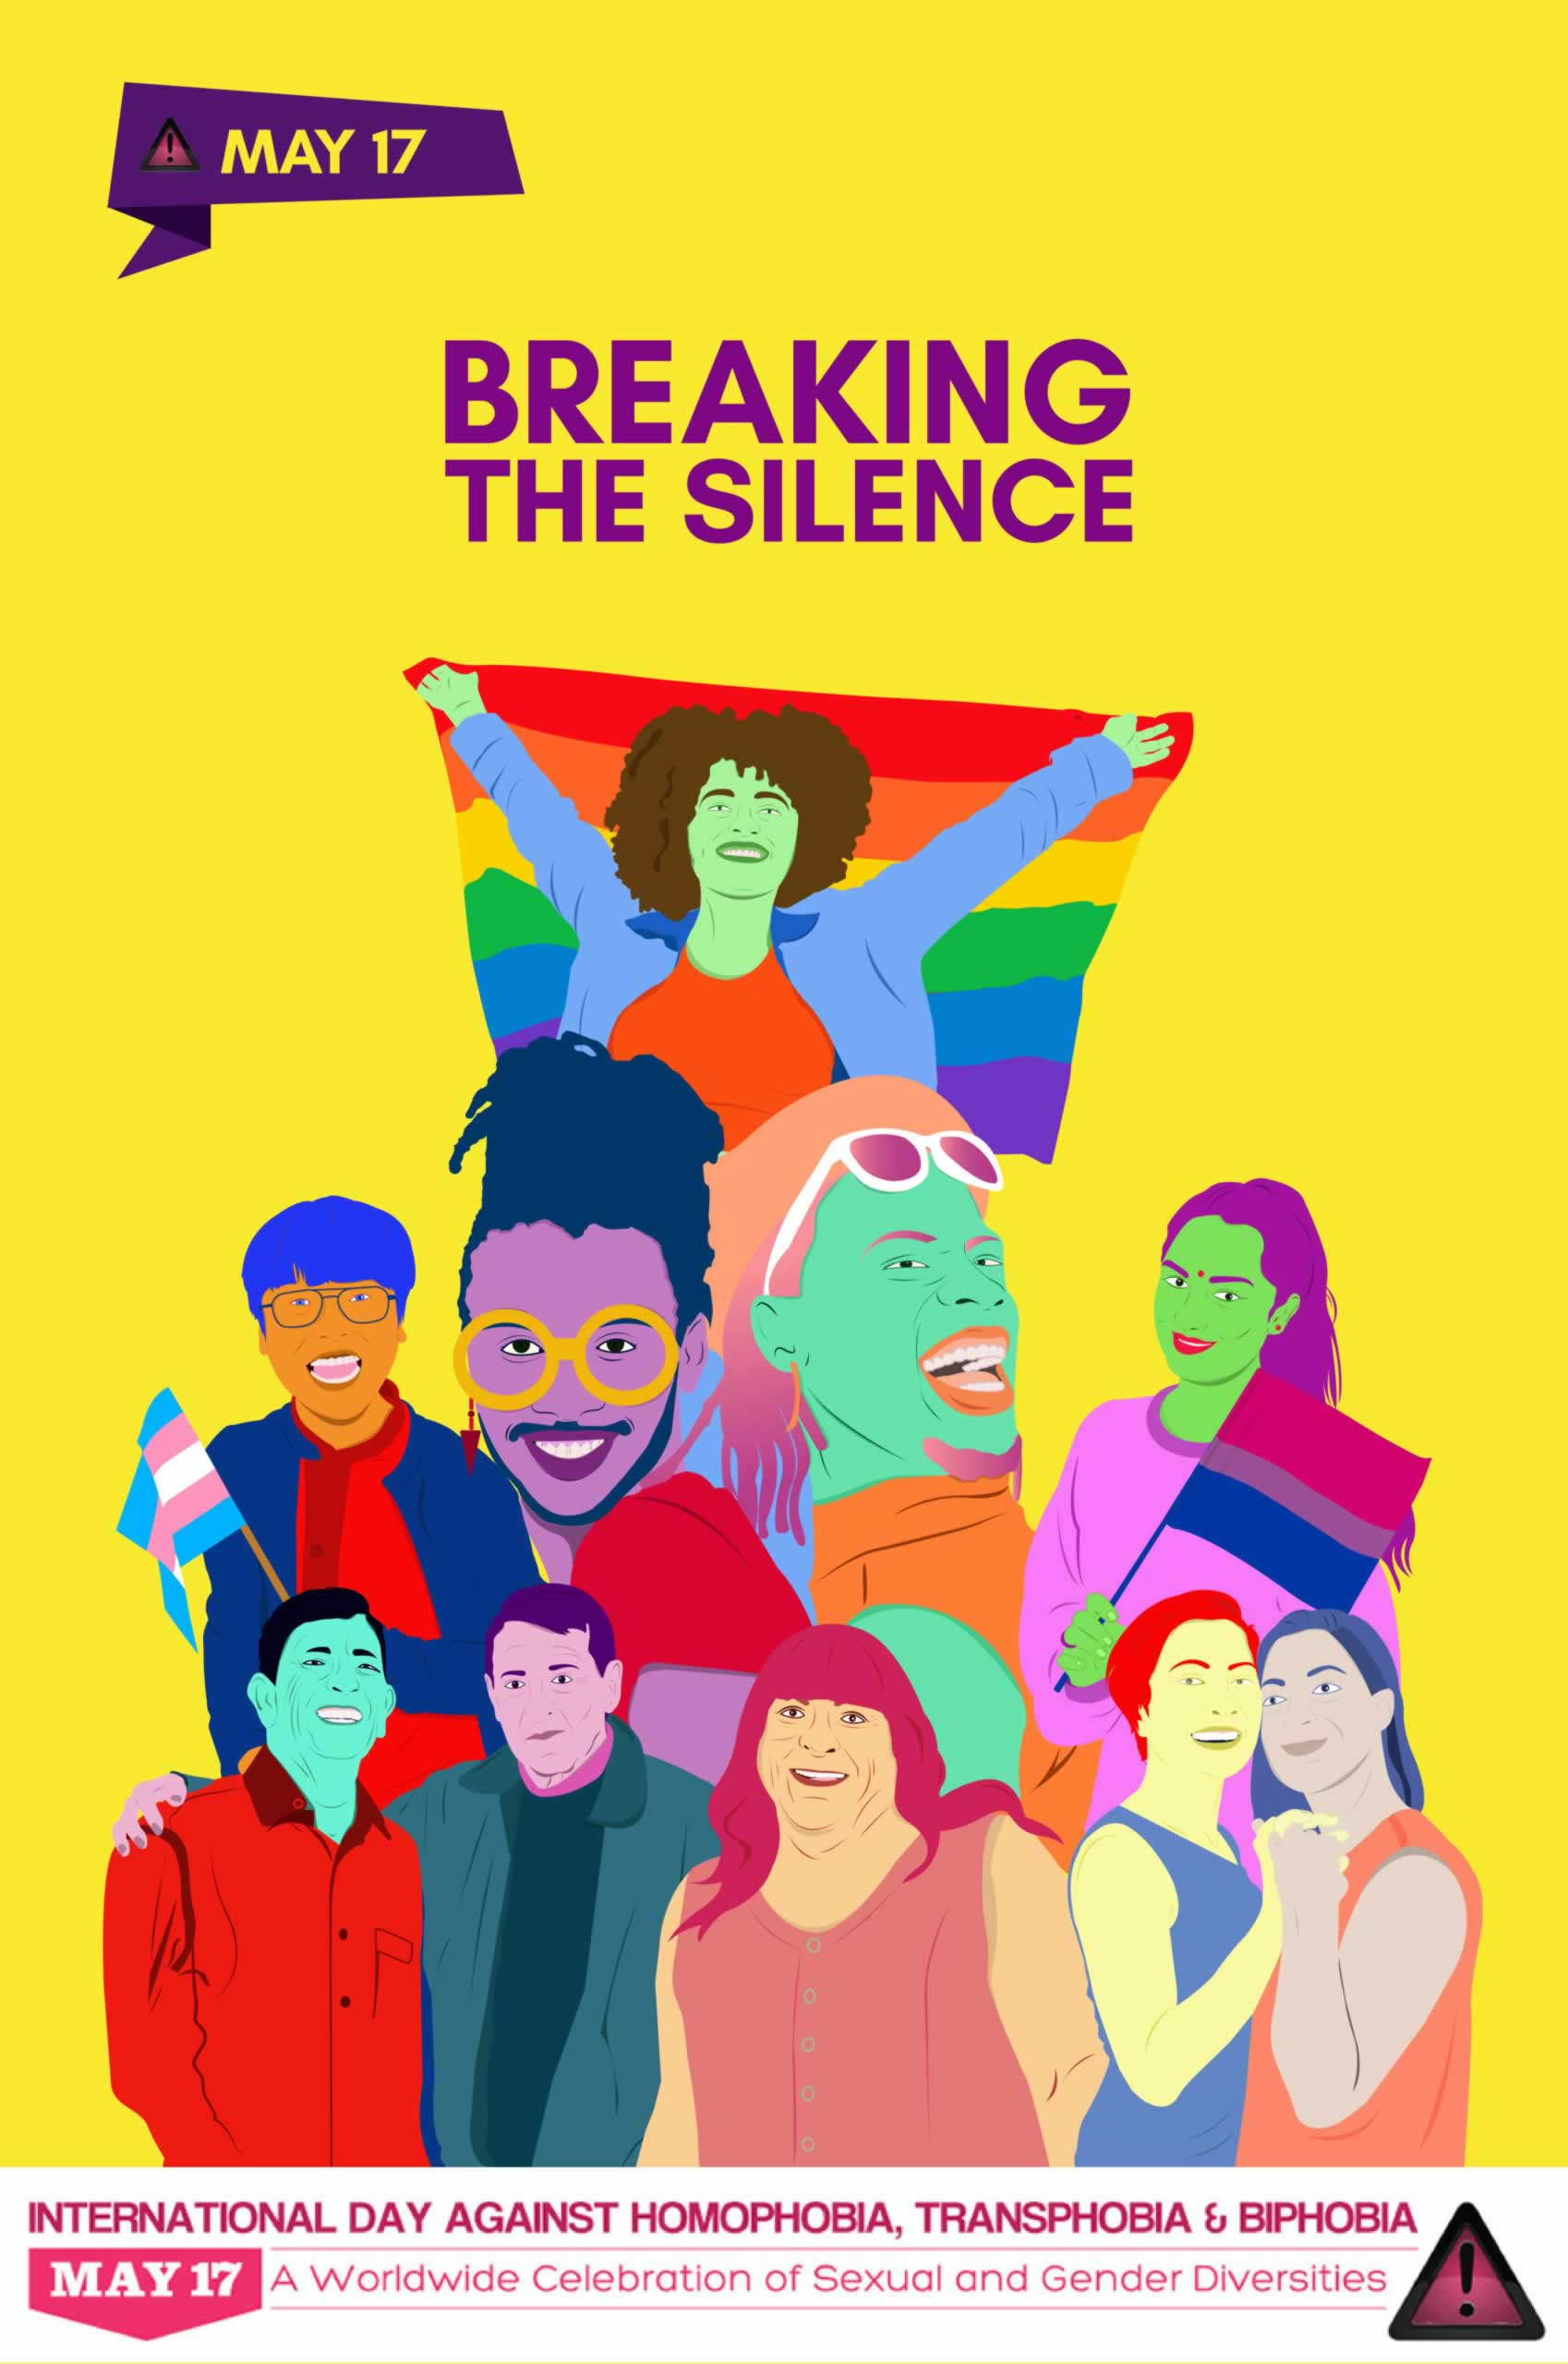 International Day against Homophobia, Transphobia and Biphobia: May 17 A worldwide celebration of Sexual and Gender Diversities